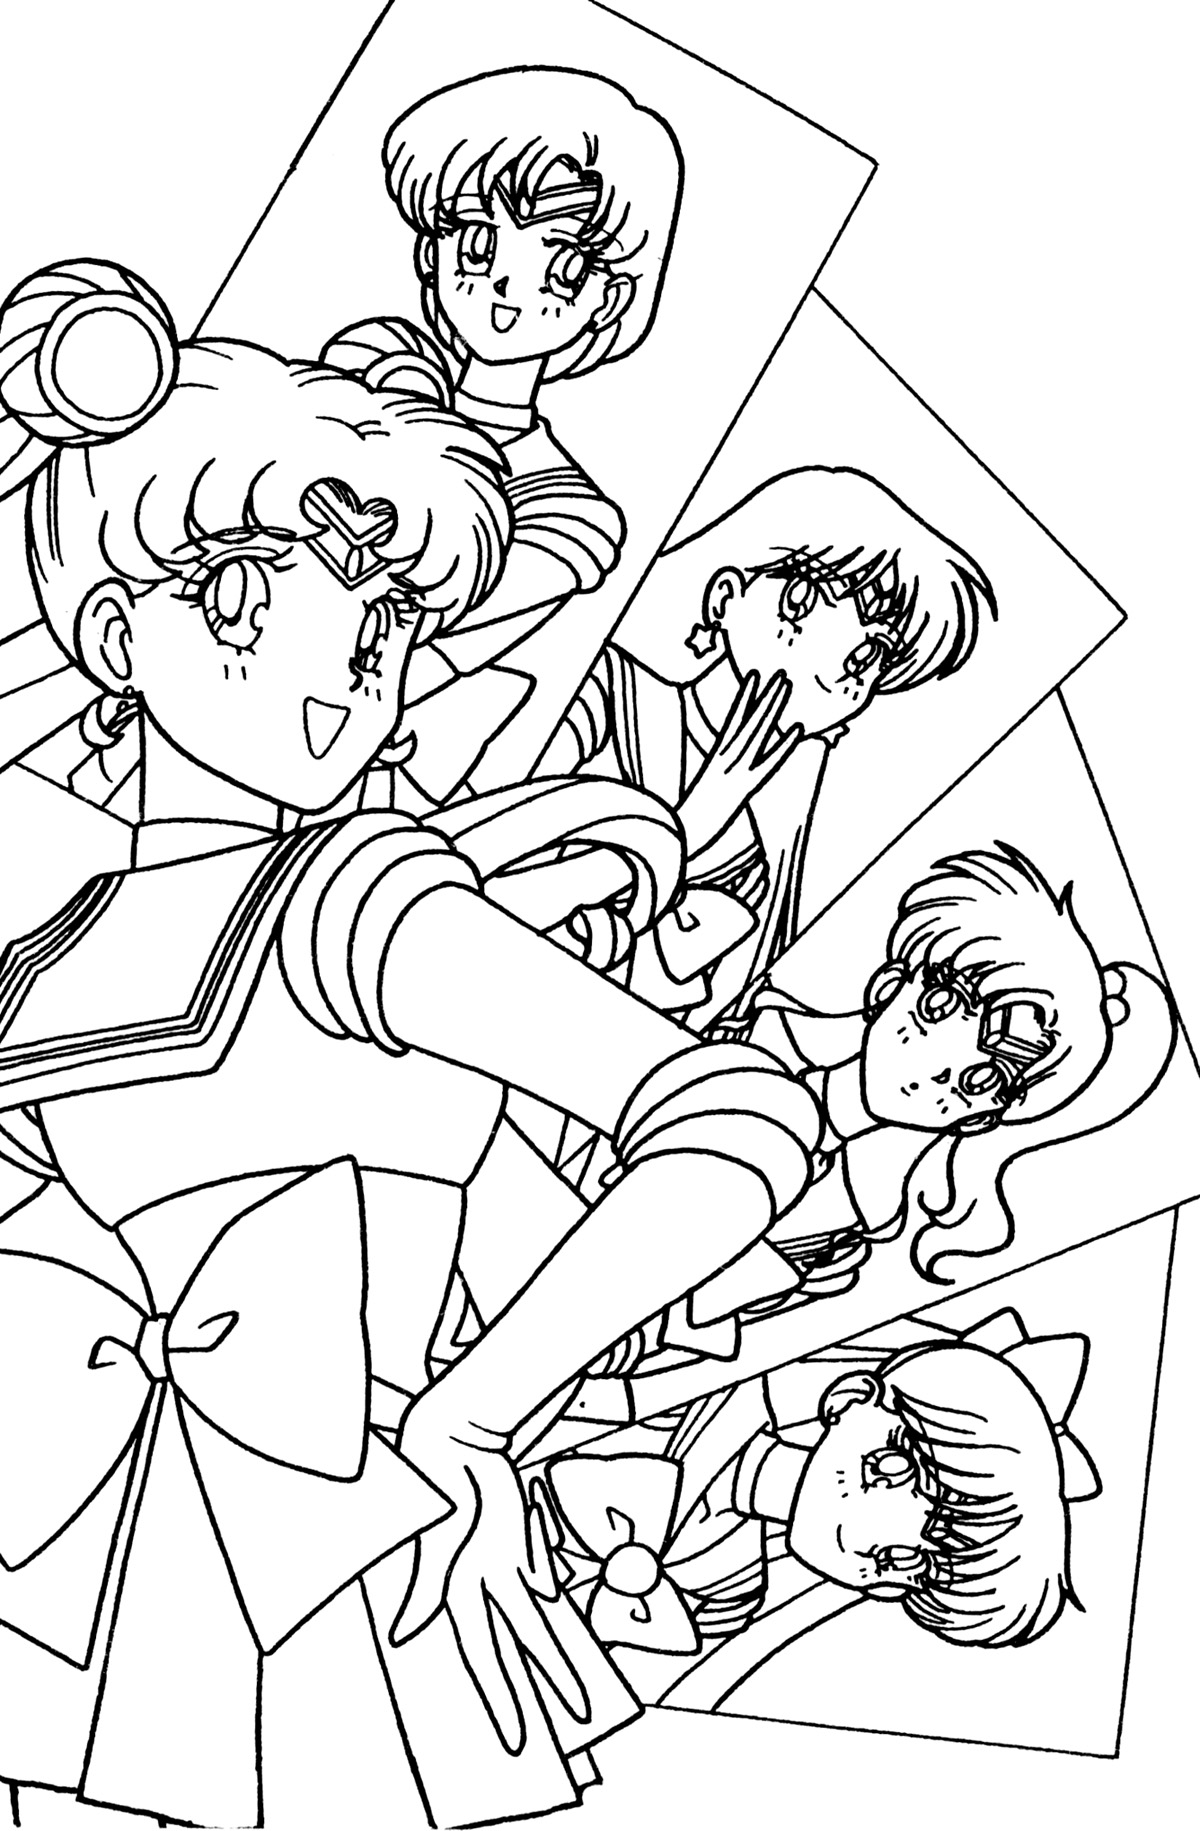 Tsuki matsuri the sailormoon coloring book archive for Coloring pages moon